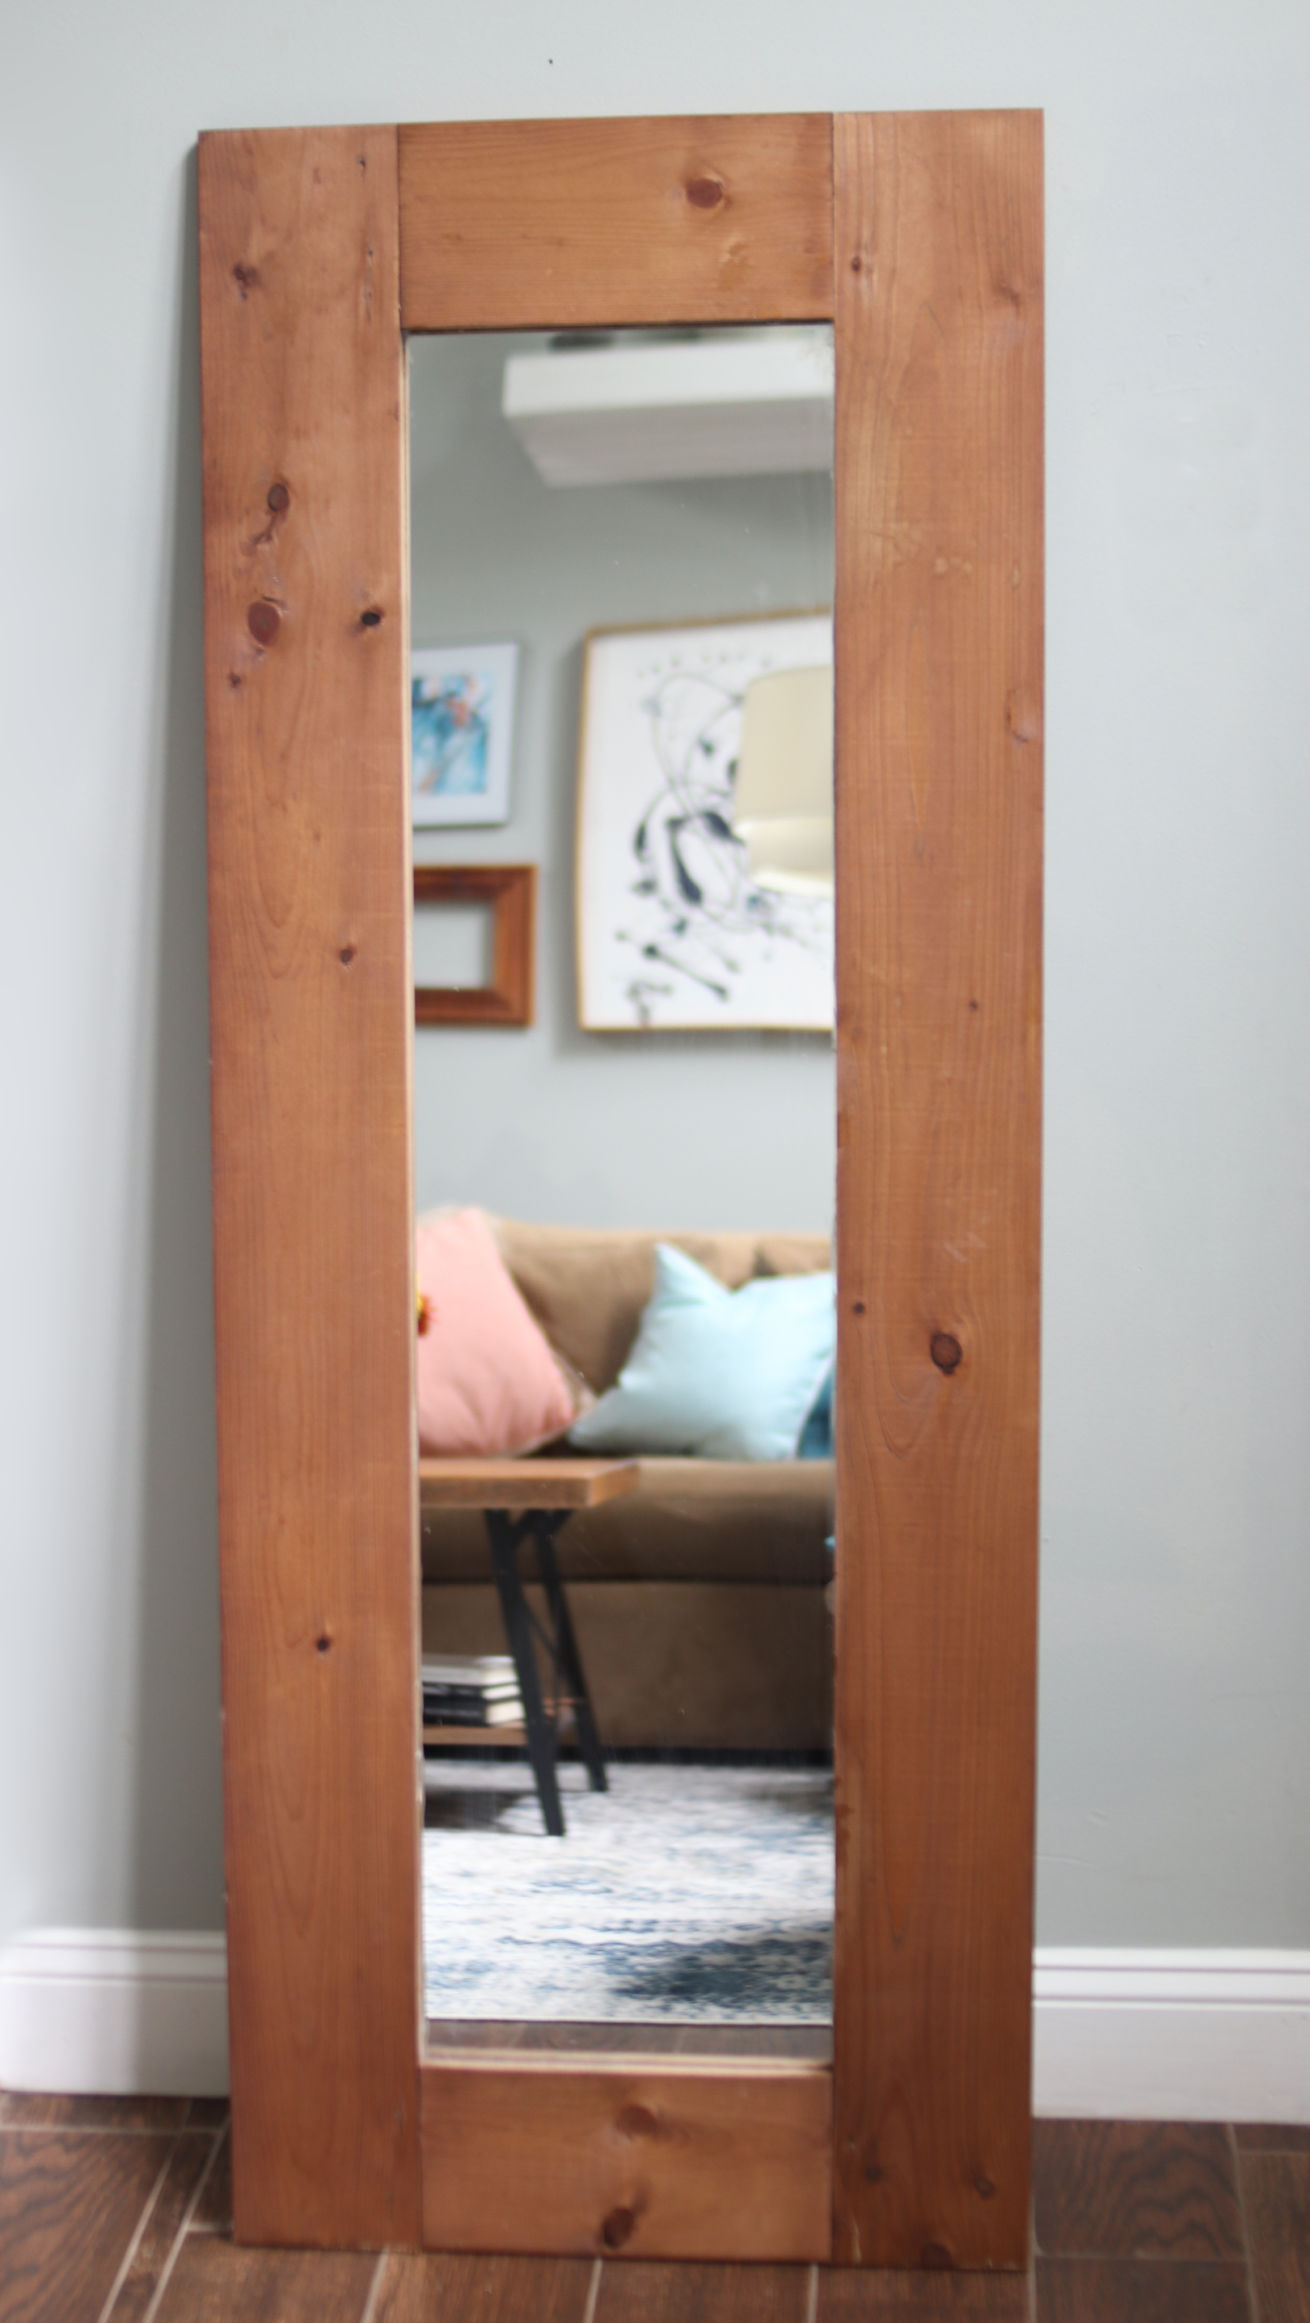 DIY Workshop - Build and Customize Full Length Mirror